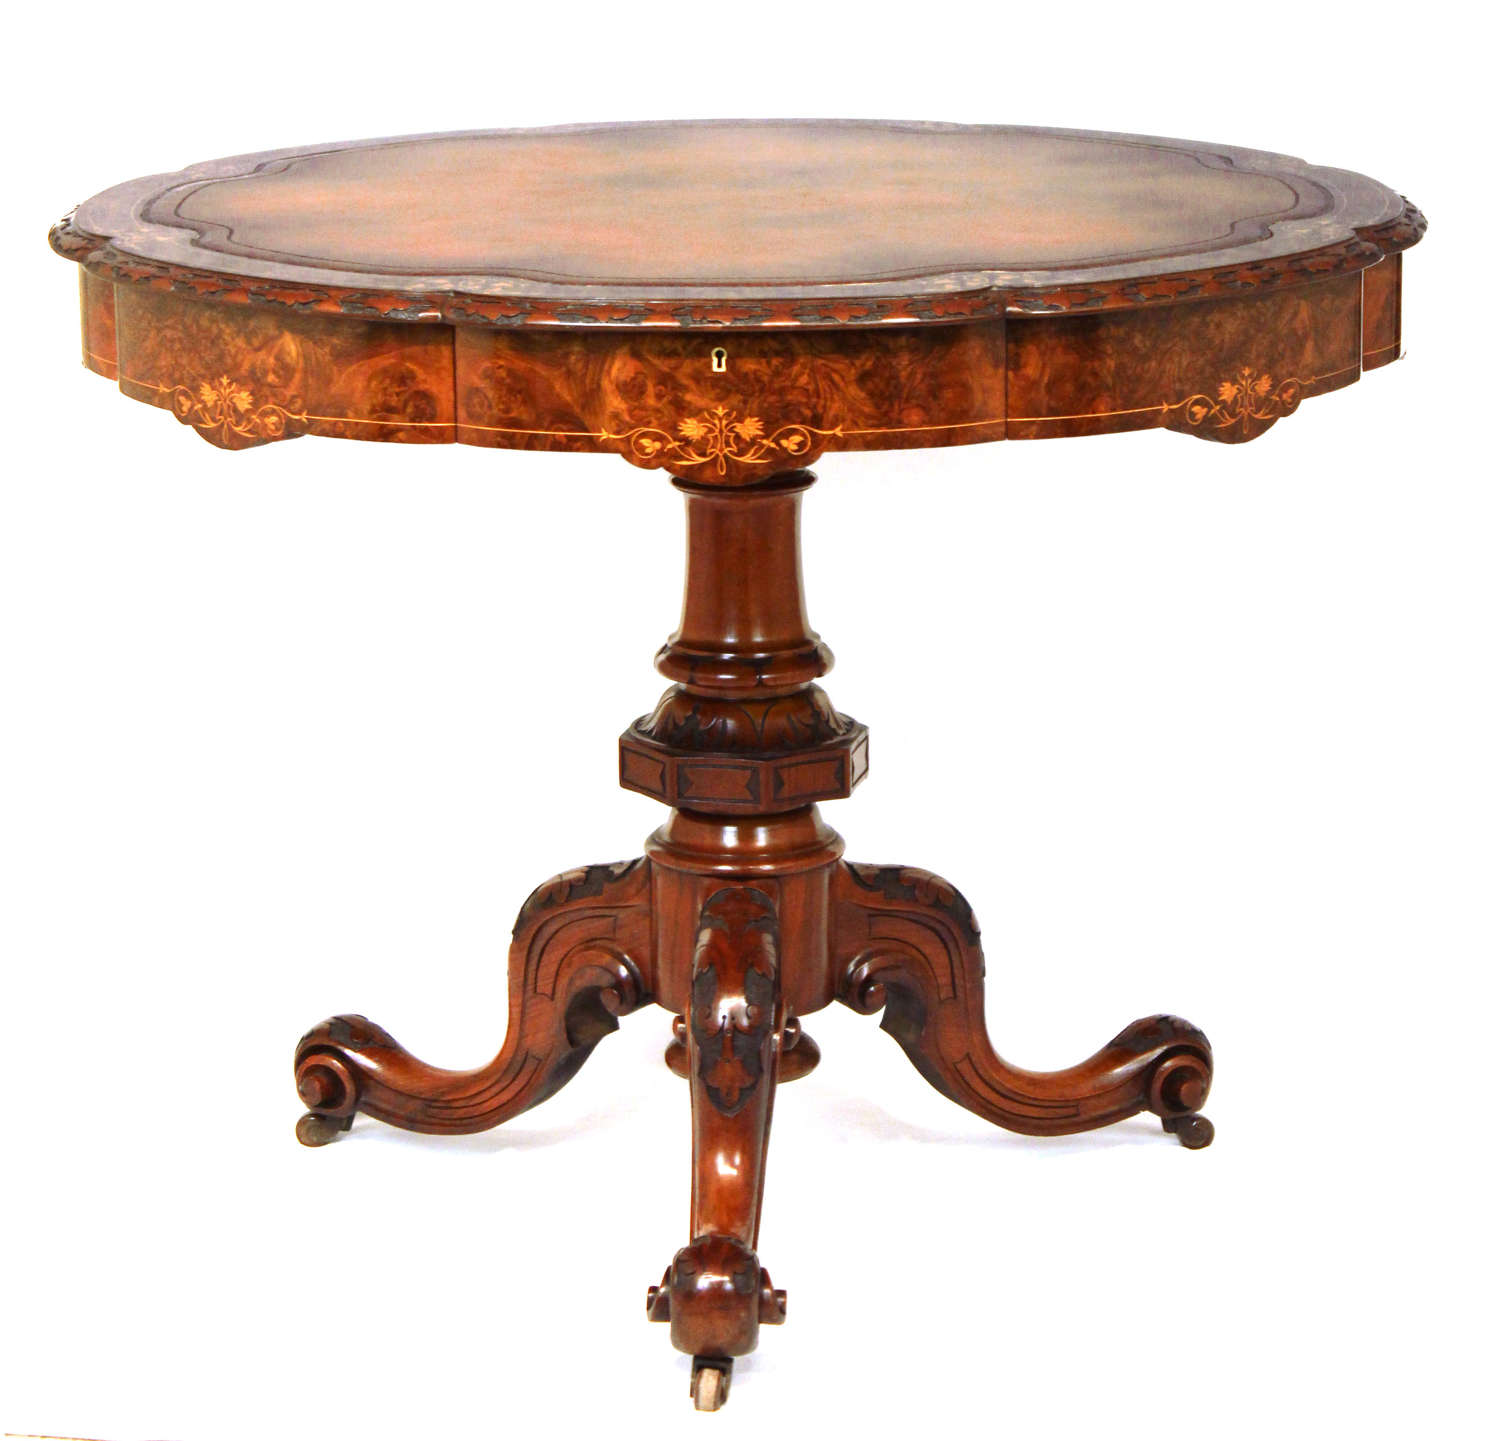 A Victorian Inlaid and Carved Walnut Drum Table